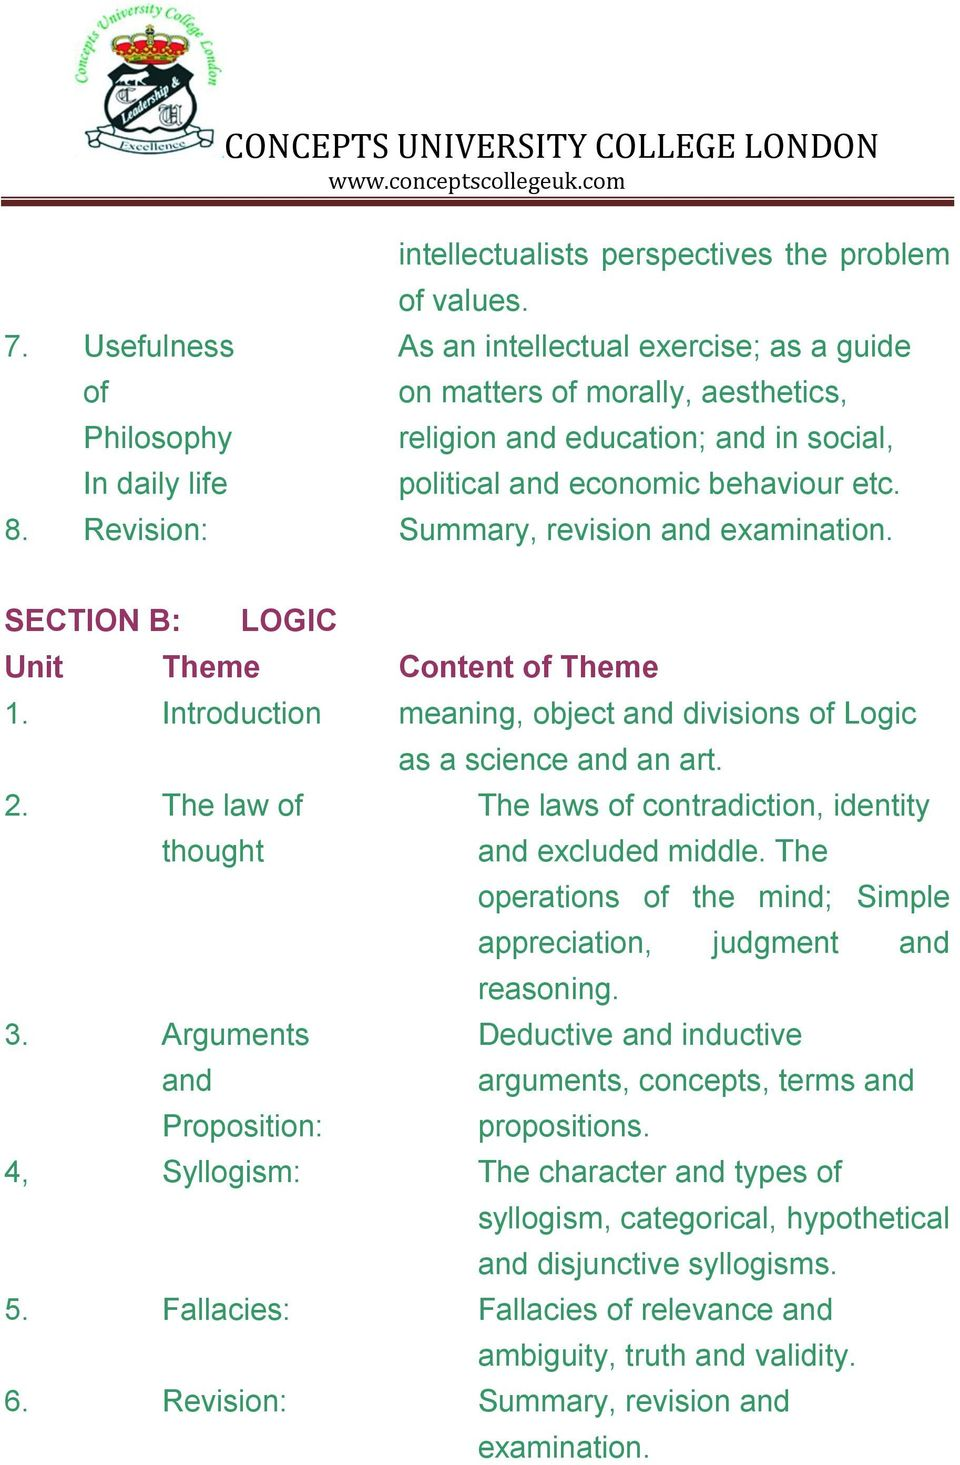 Revision: Summary, revision and examination. SECTION B: LOGIC Unit Theme Content of Theme 1. Introduction meaning, object and divisions of Logic as a science and an art. 2.